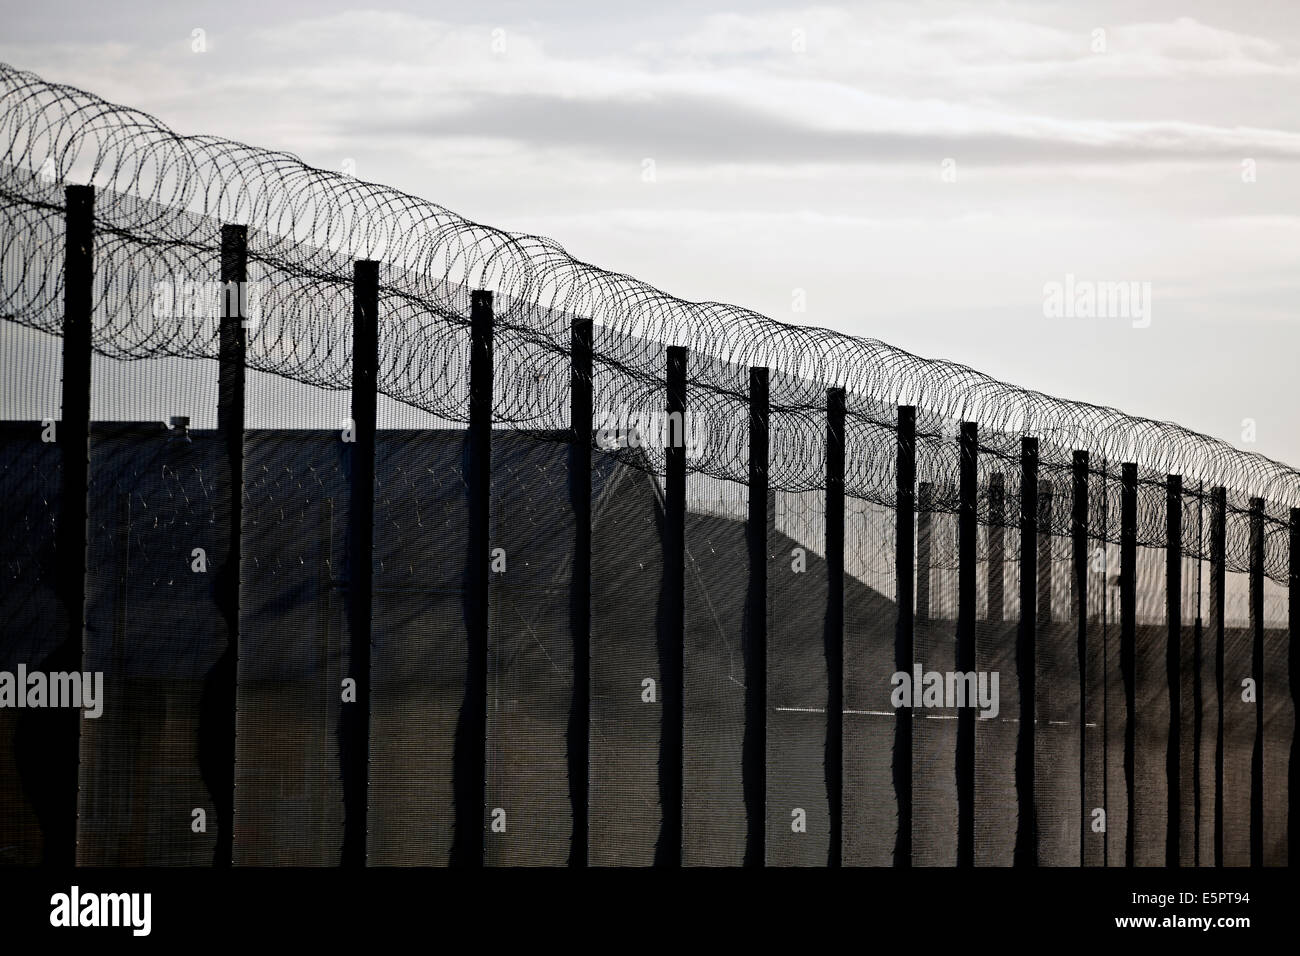 Security fencing, razor wire and CCTV cameras around the perimeter of a UK prison. - Stock Image